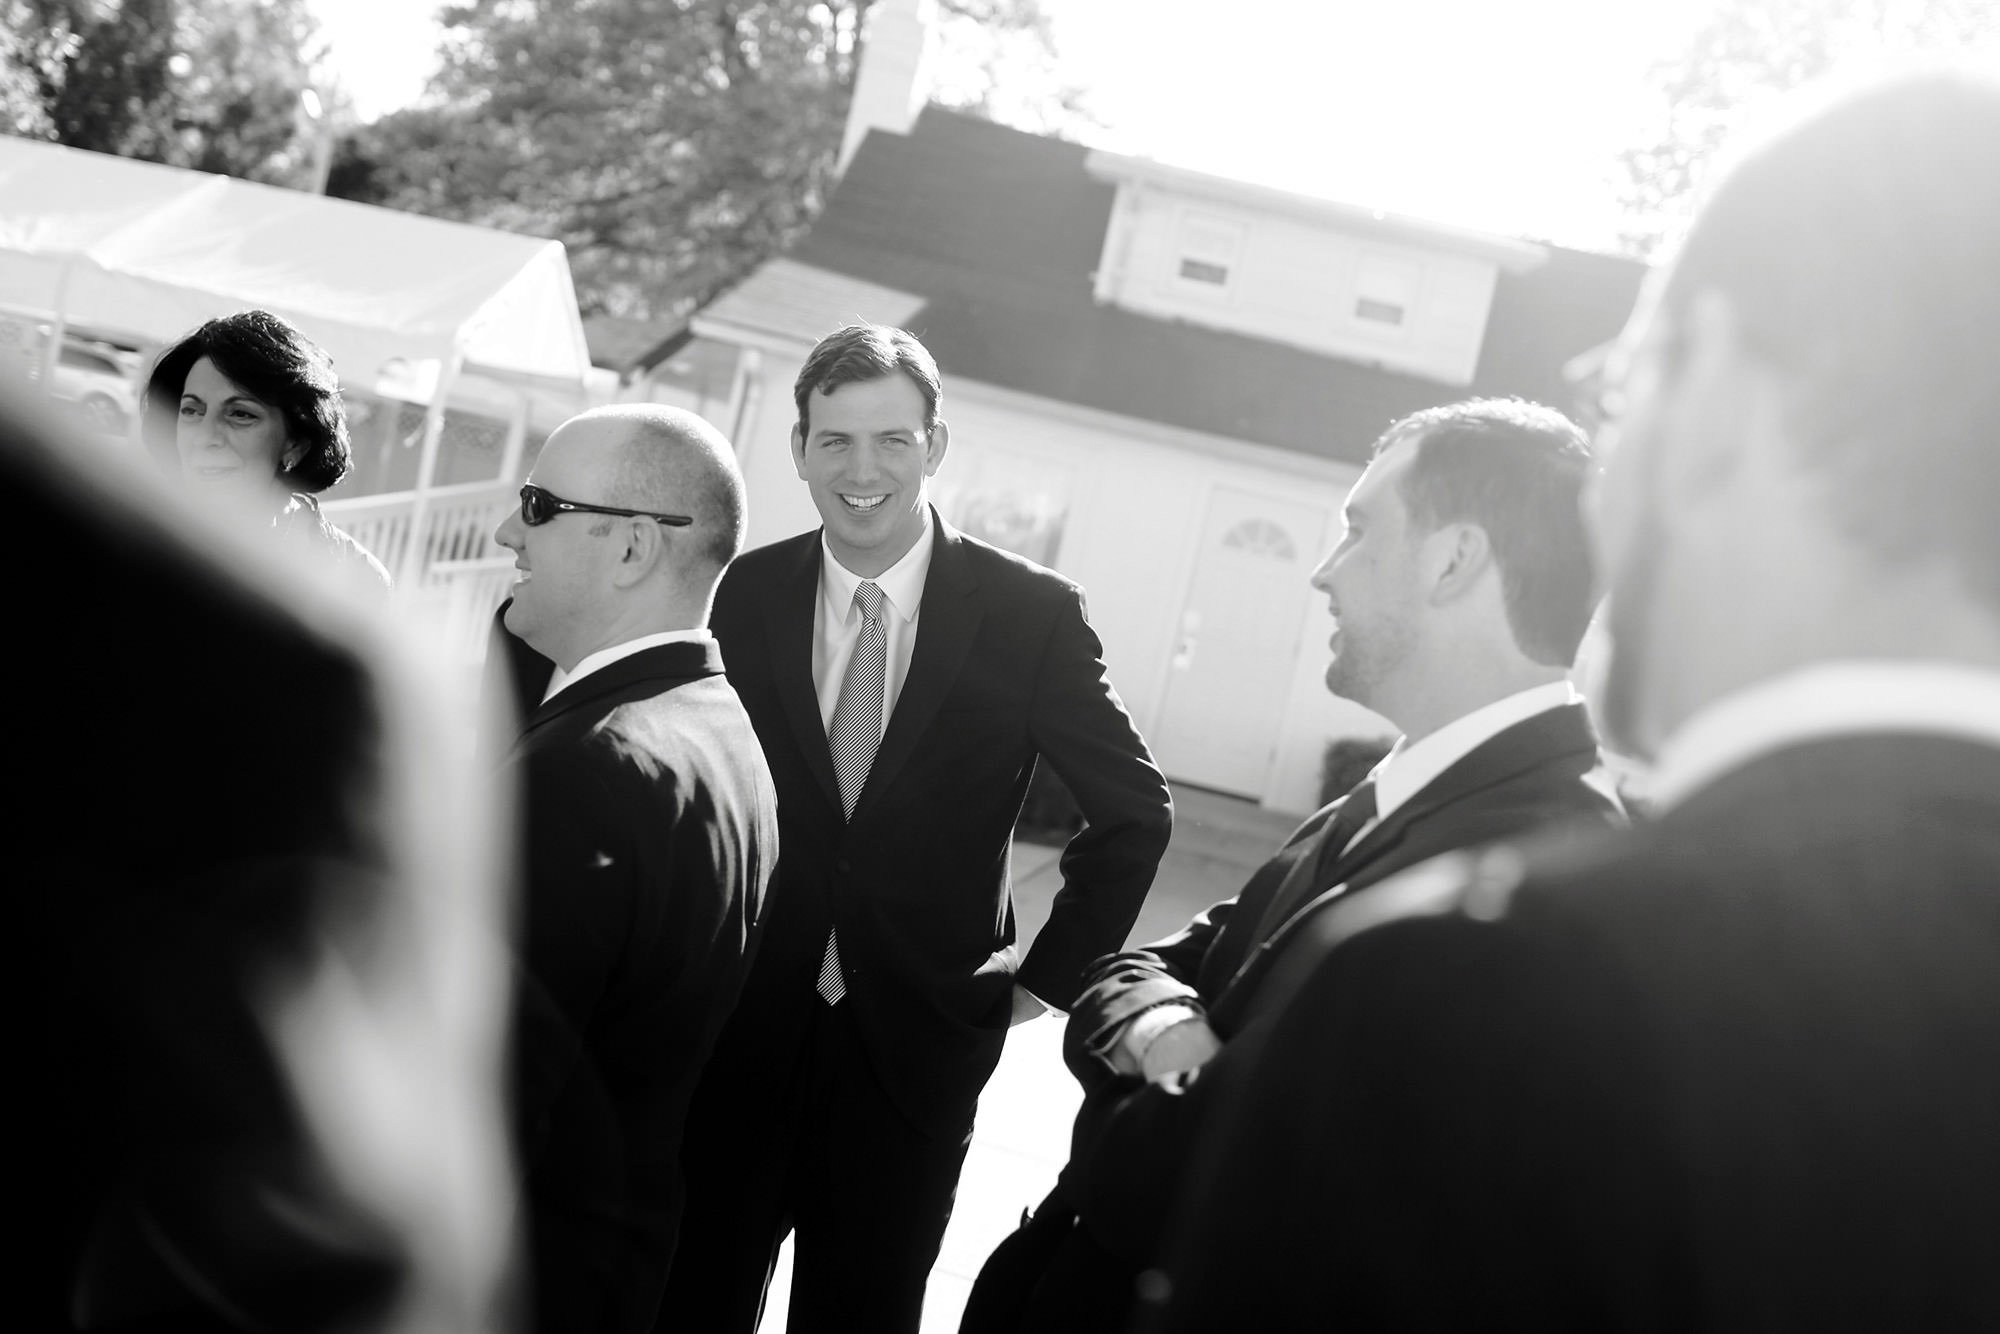 The groom laughs with his groomsmen before the wedding ceremony at Celebrations at the Bay.